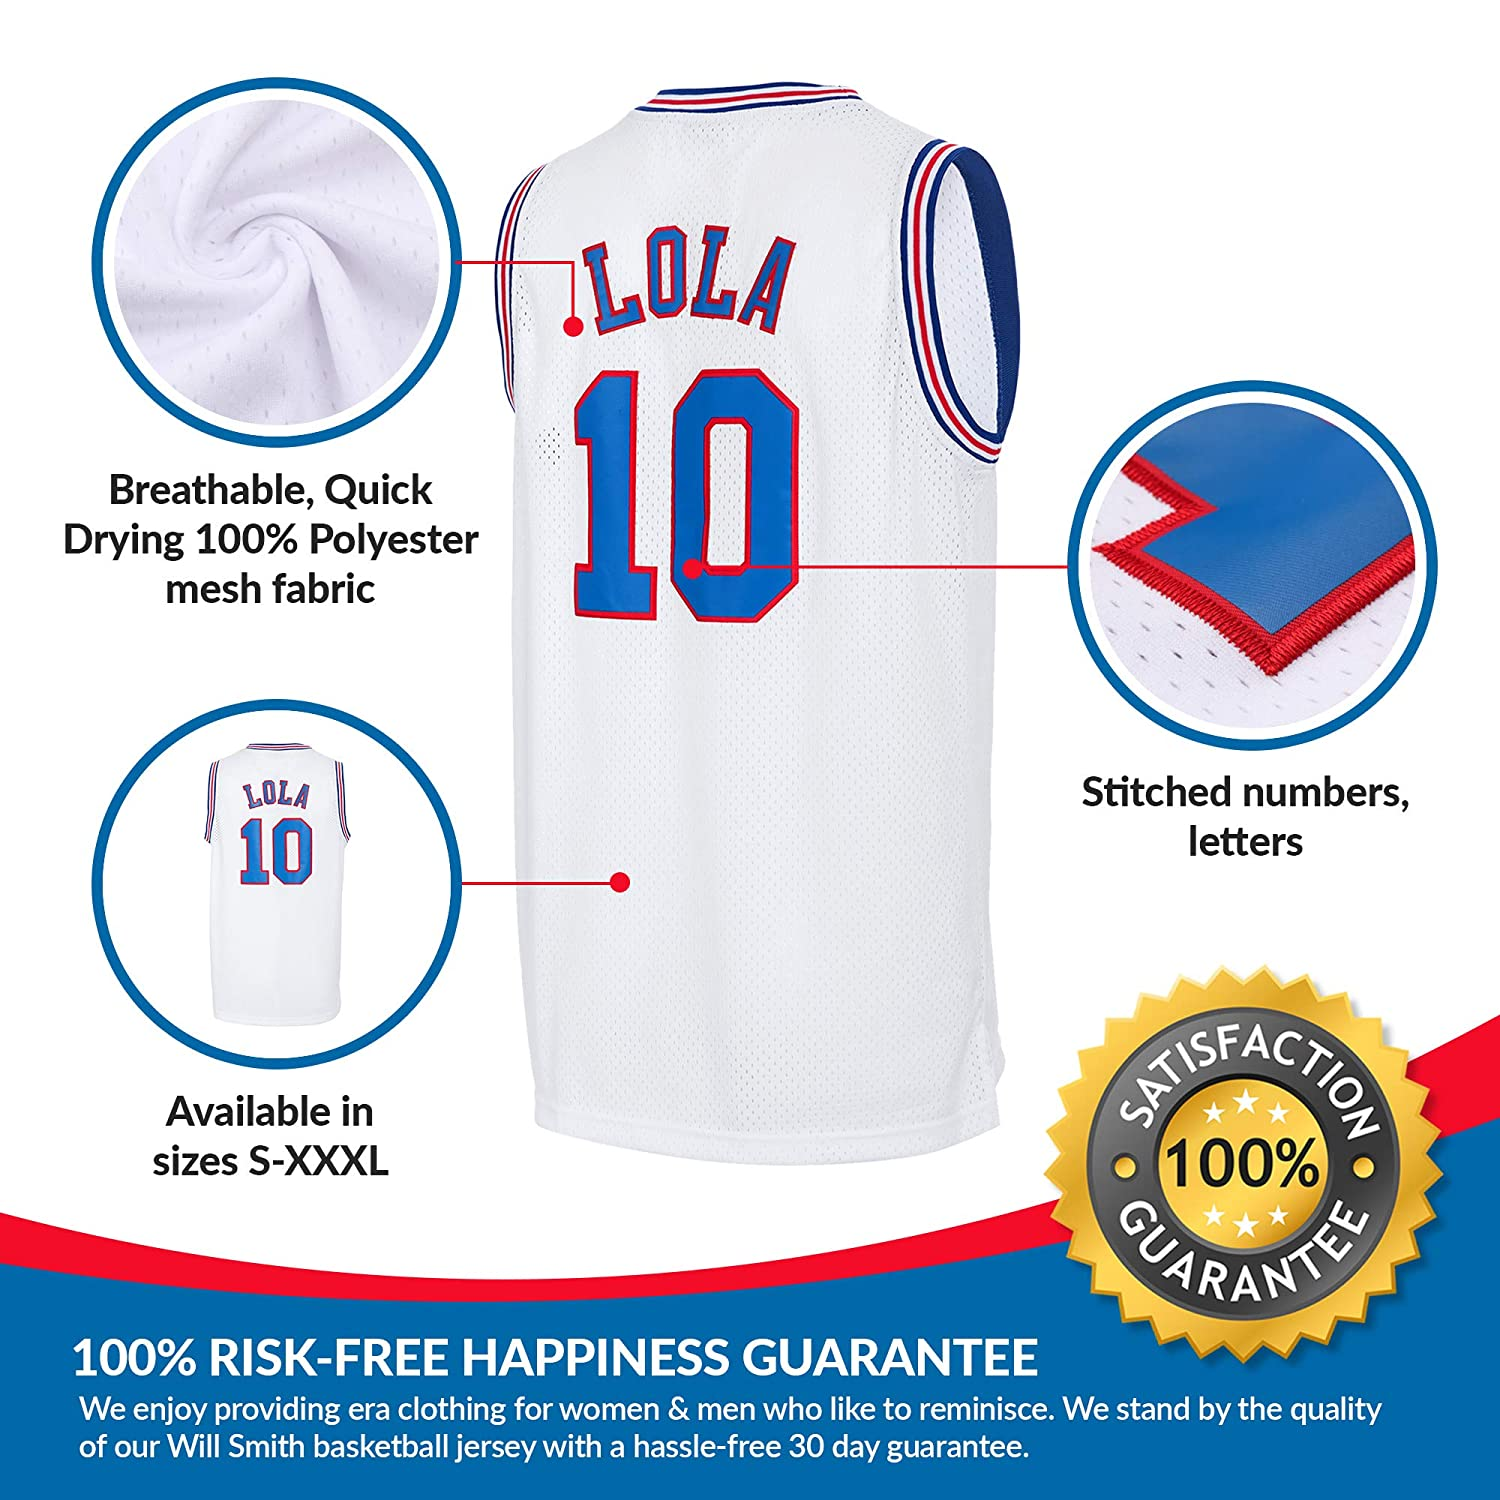 7361a47e9d07 AFLGO Lola Space Jam Jersey Basketball Jersey Include Set GLOW IN THE DARK  Wristbands S-XXL White  Amazon.co.uk  Sports   Outdoors